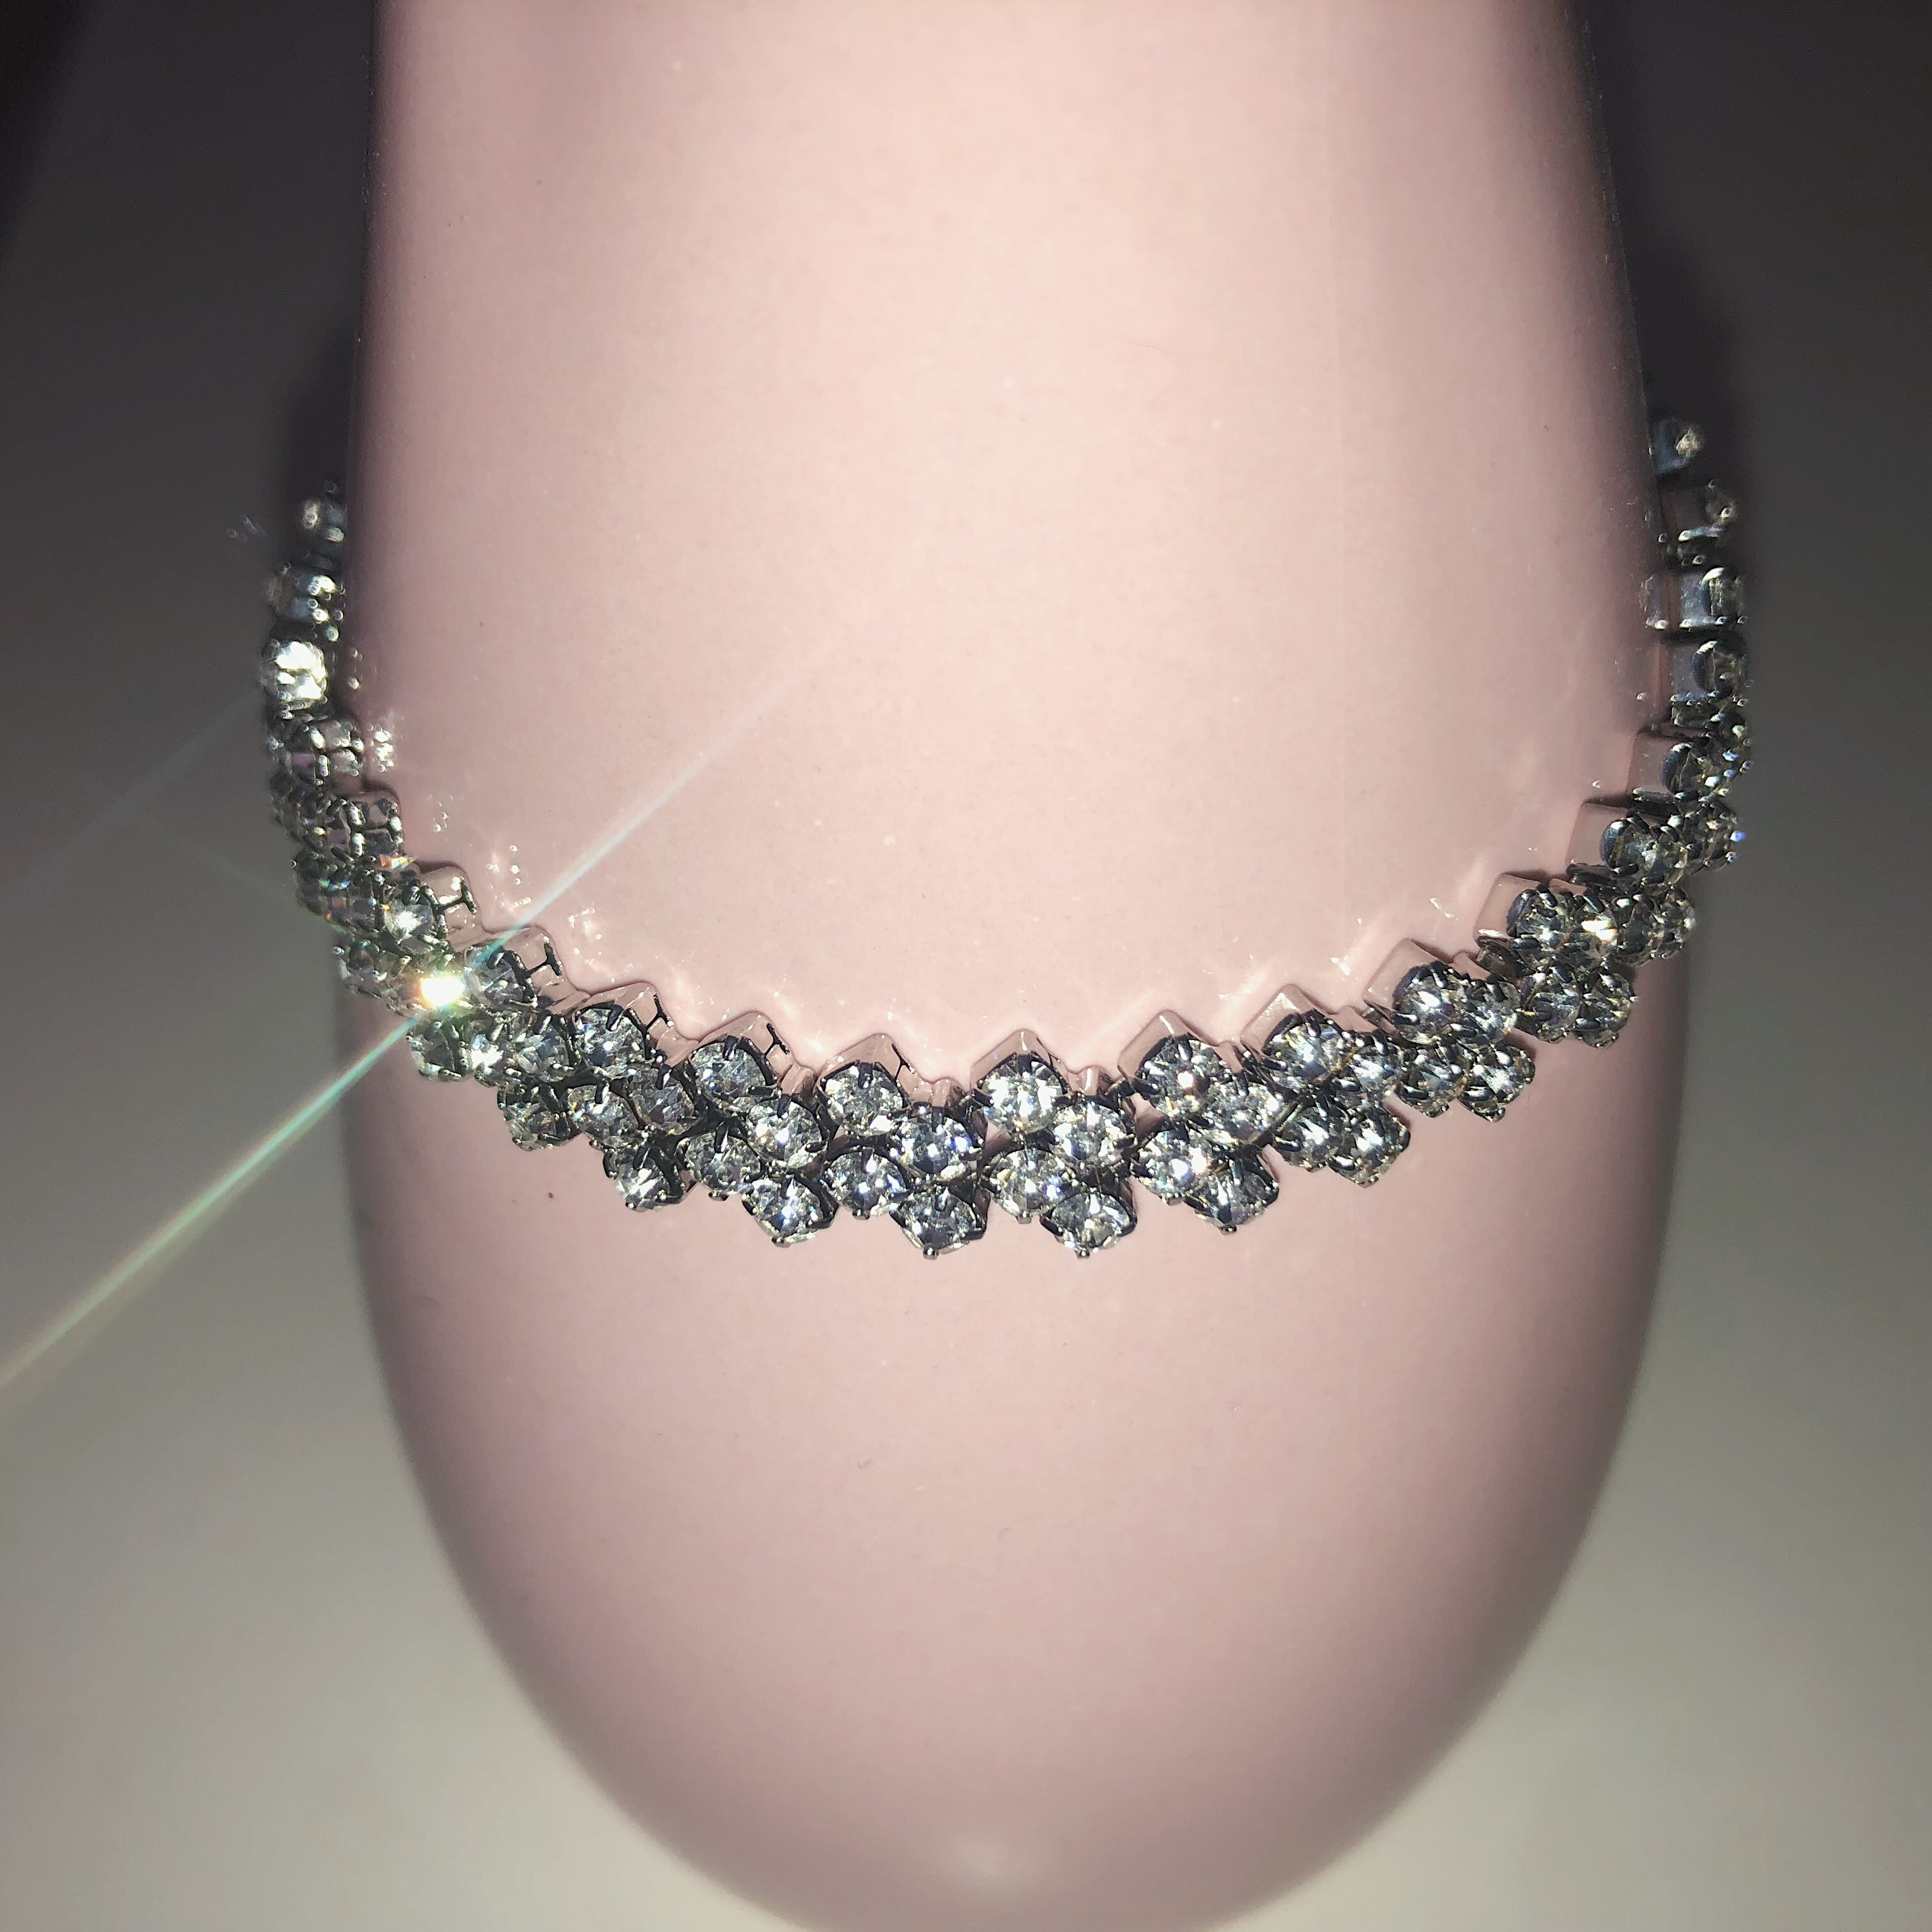 (fake) diamond bracelet selling cuz it's a little    - Depop